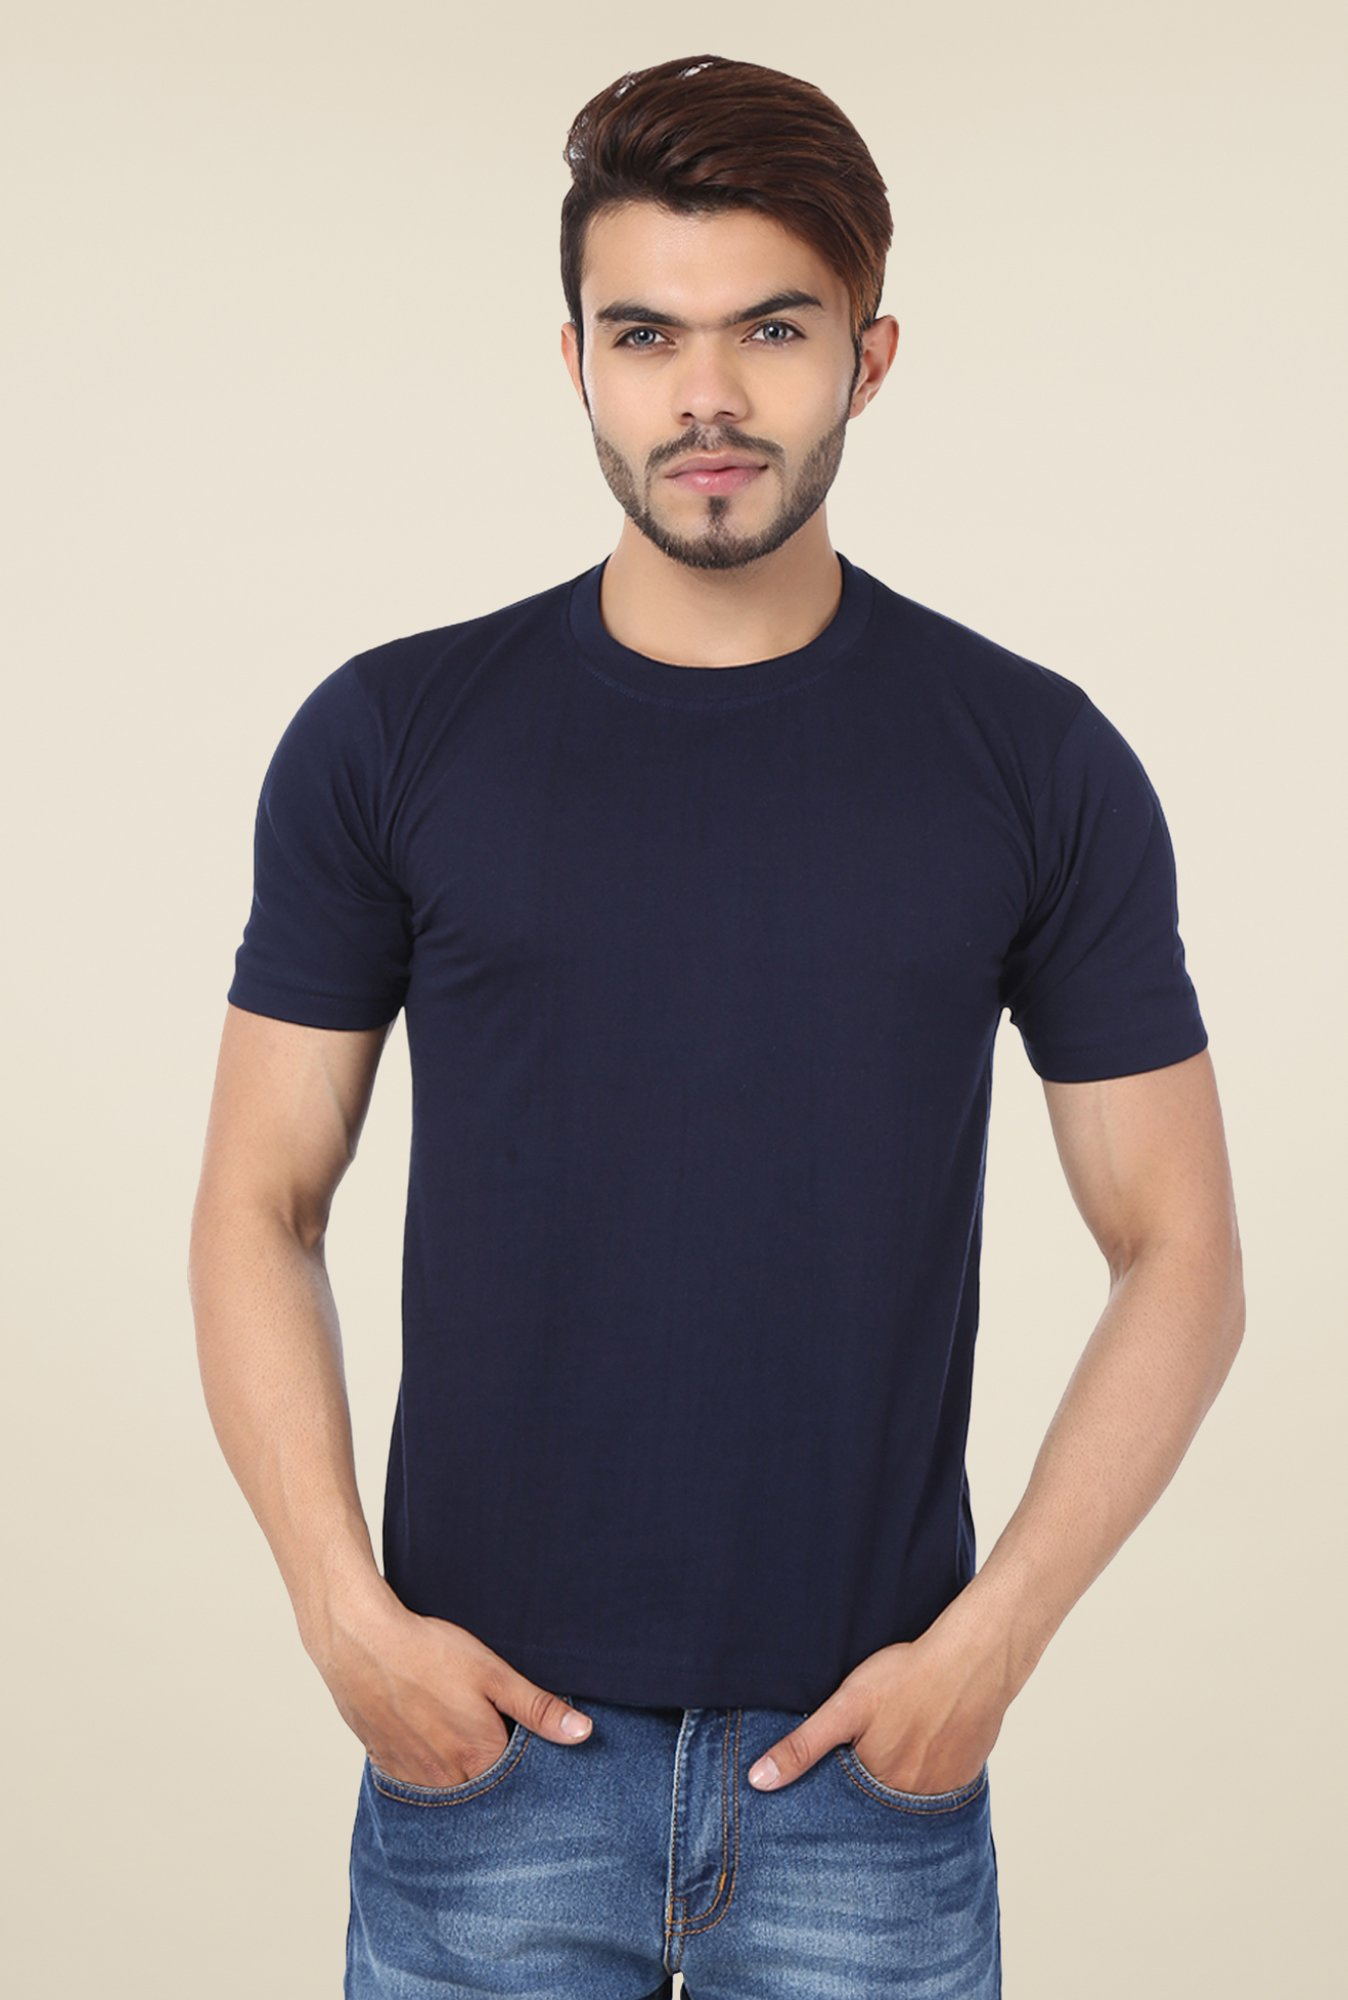 Weardo Navy Crew Neck T Shirt